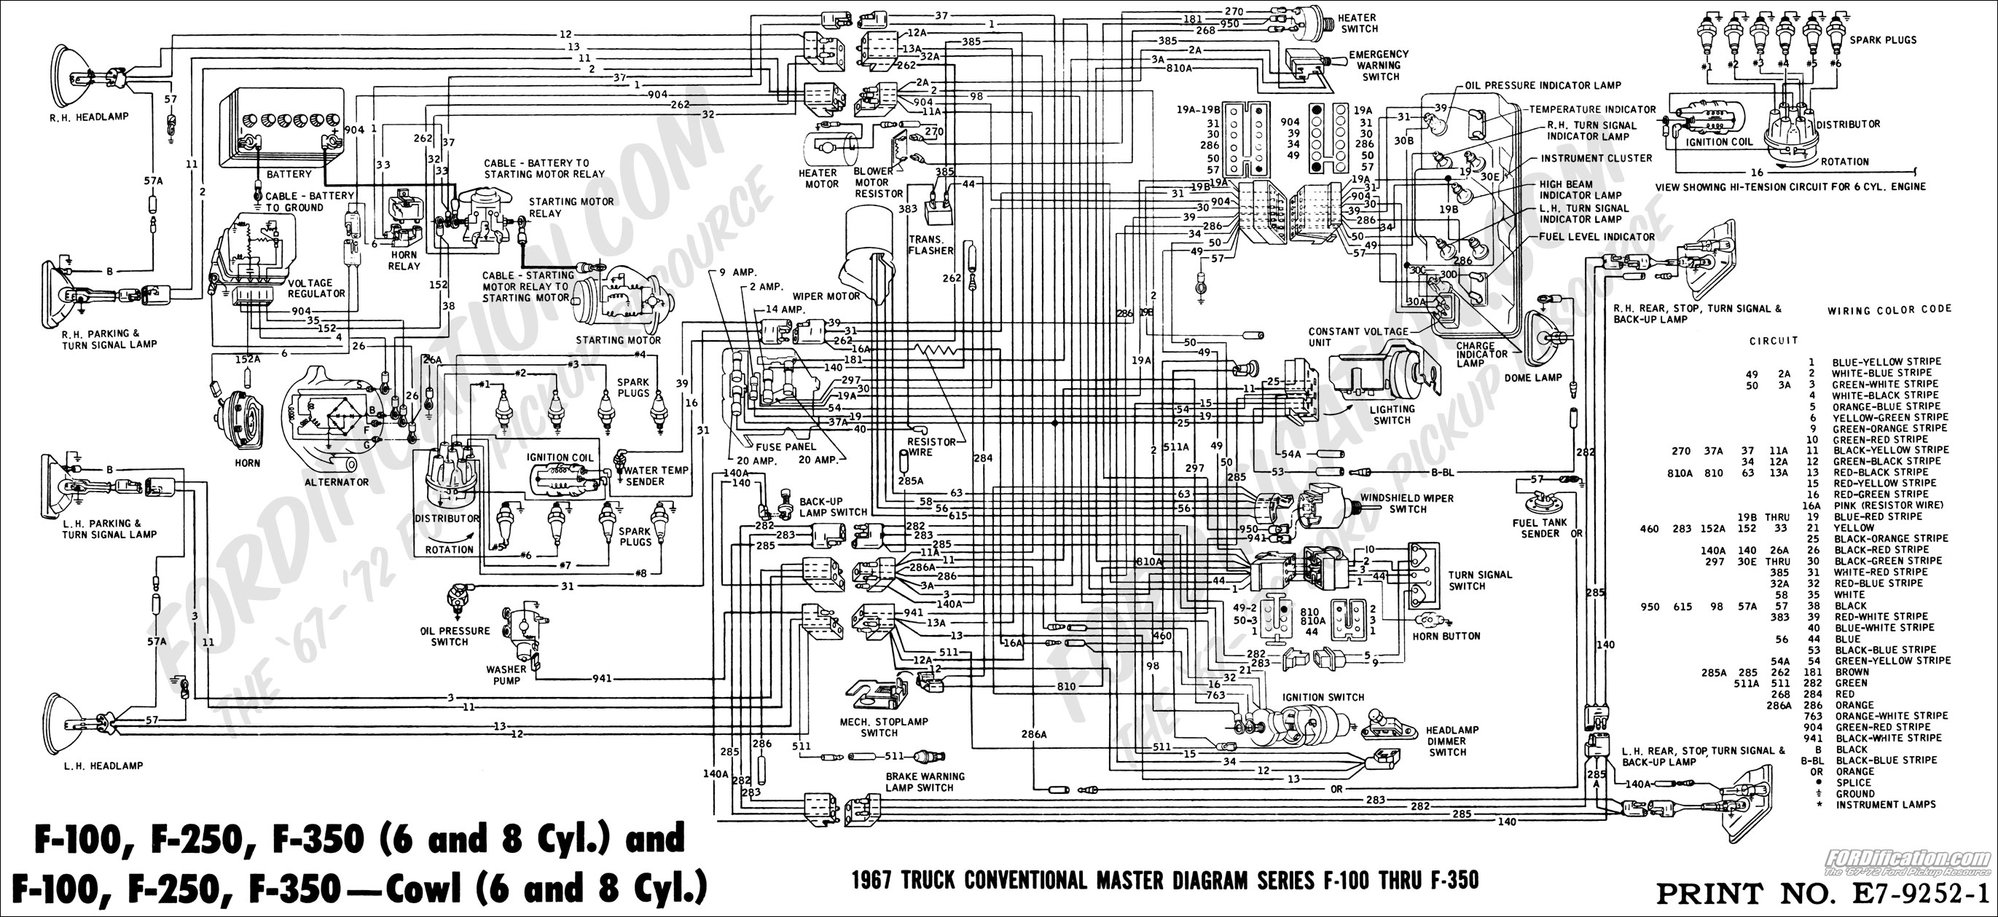 Emergency Turnsignal Flasher Ford Truck Enthusiasts Forums 2005 Ford F-150  Wiring Schematic 1983 Ford F 150 Wiring Diagram Emergency Flashers